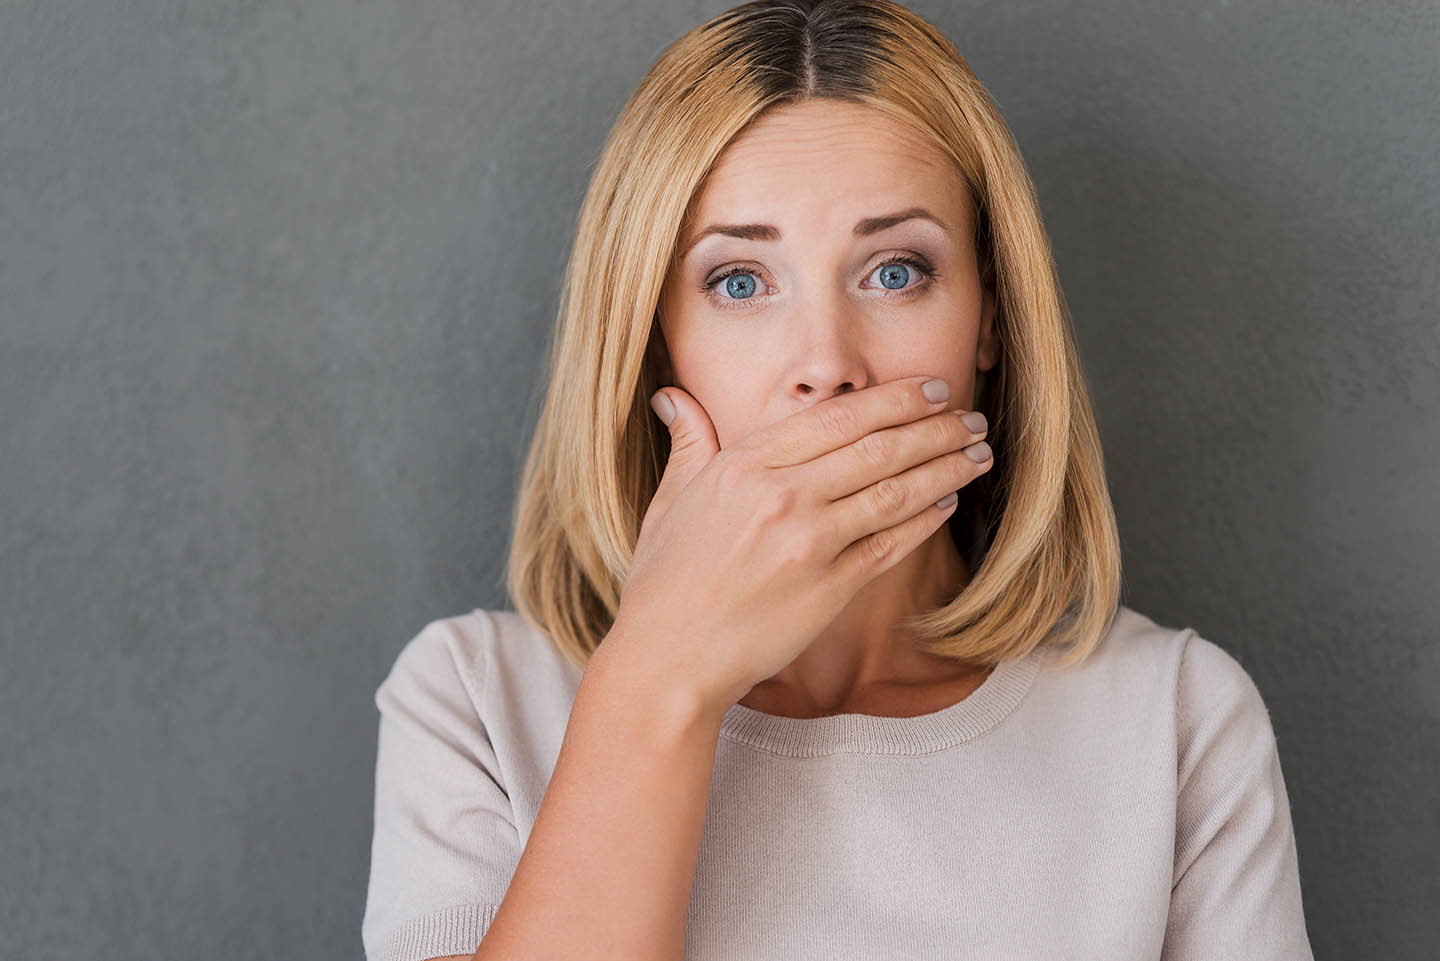 woman coving her mouth